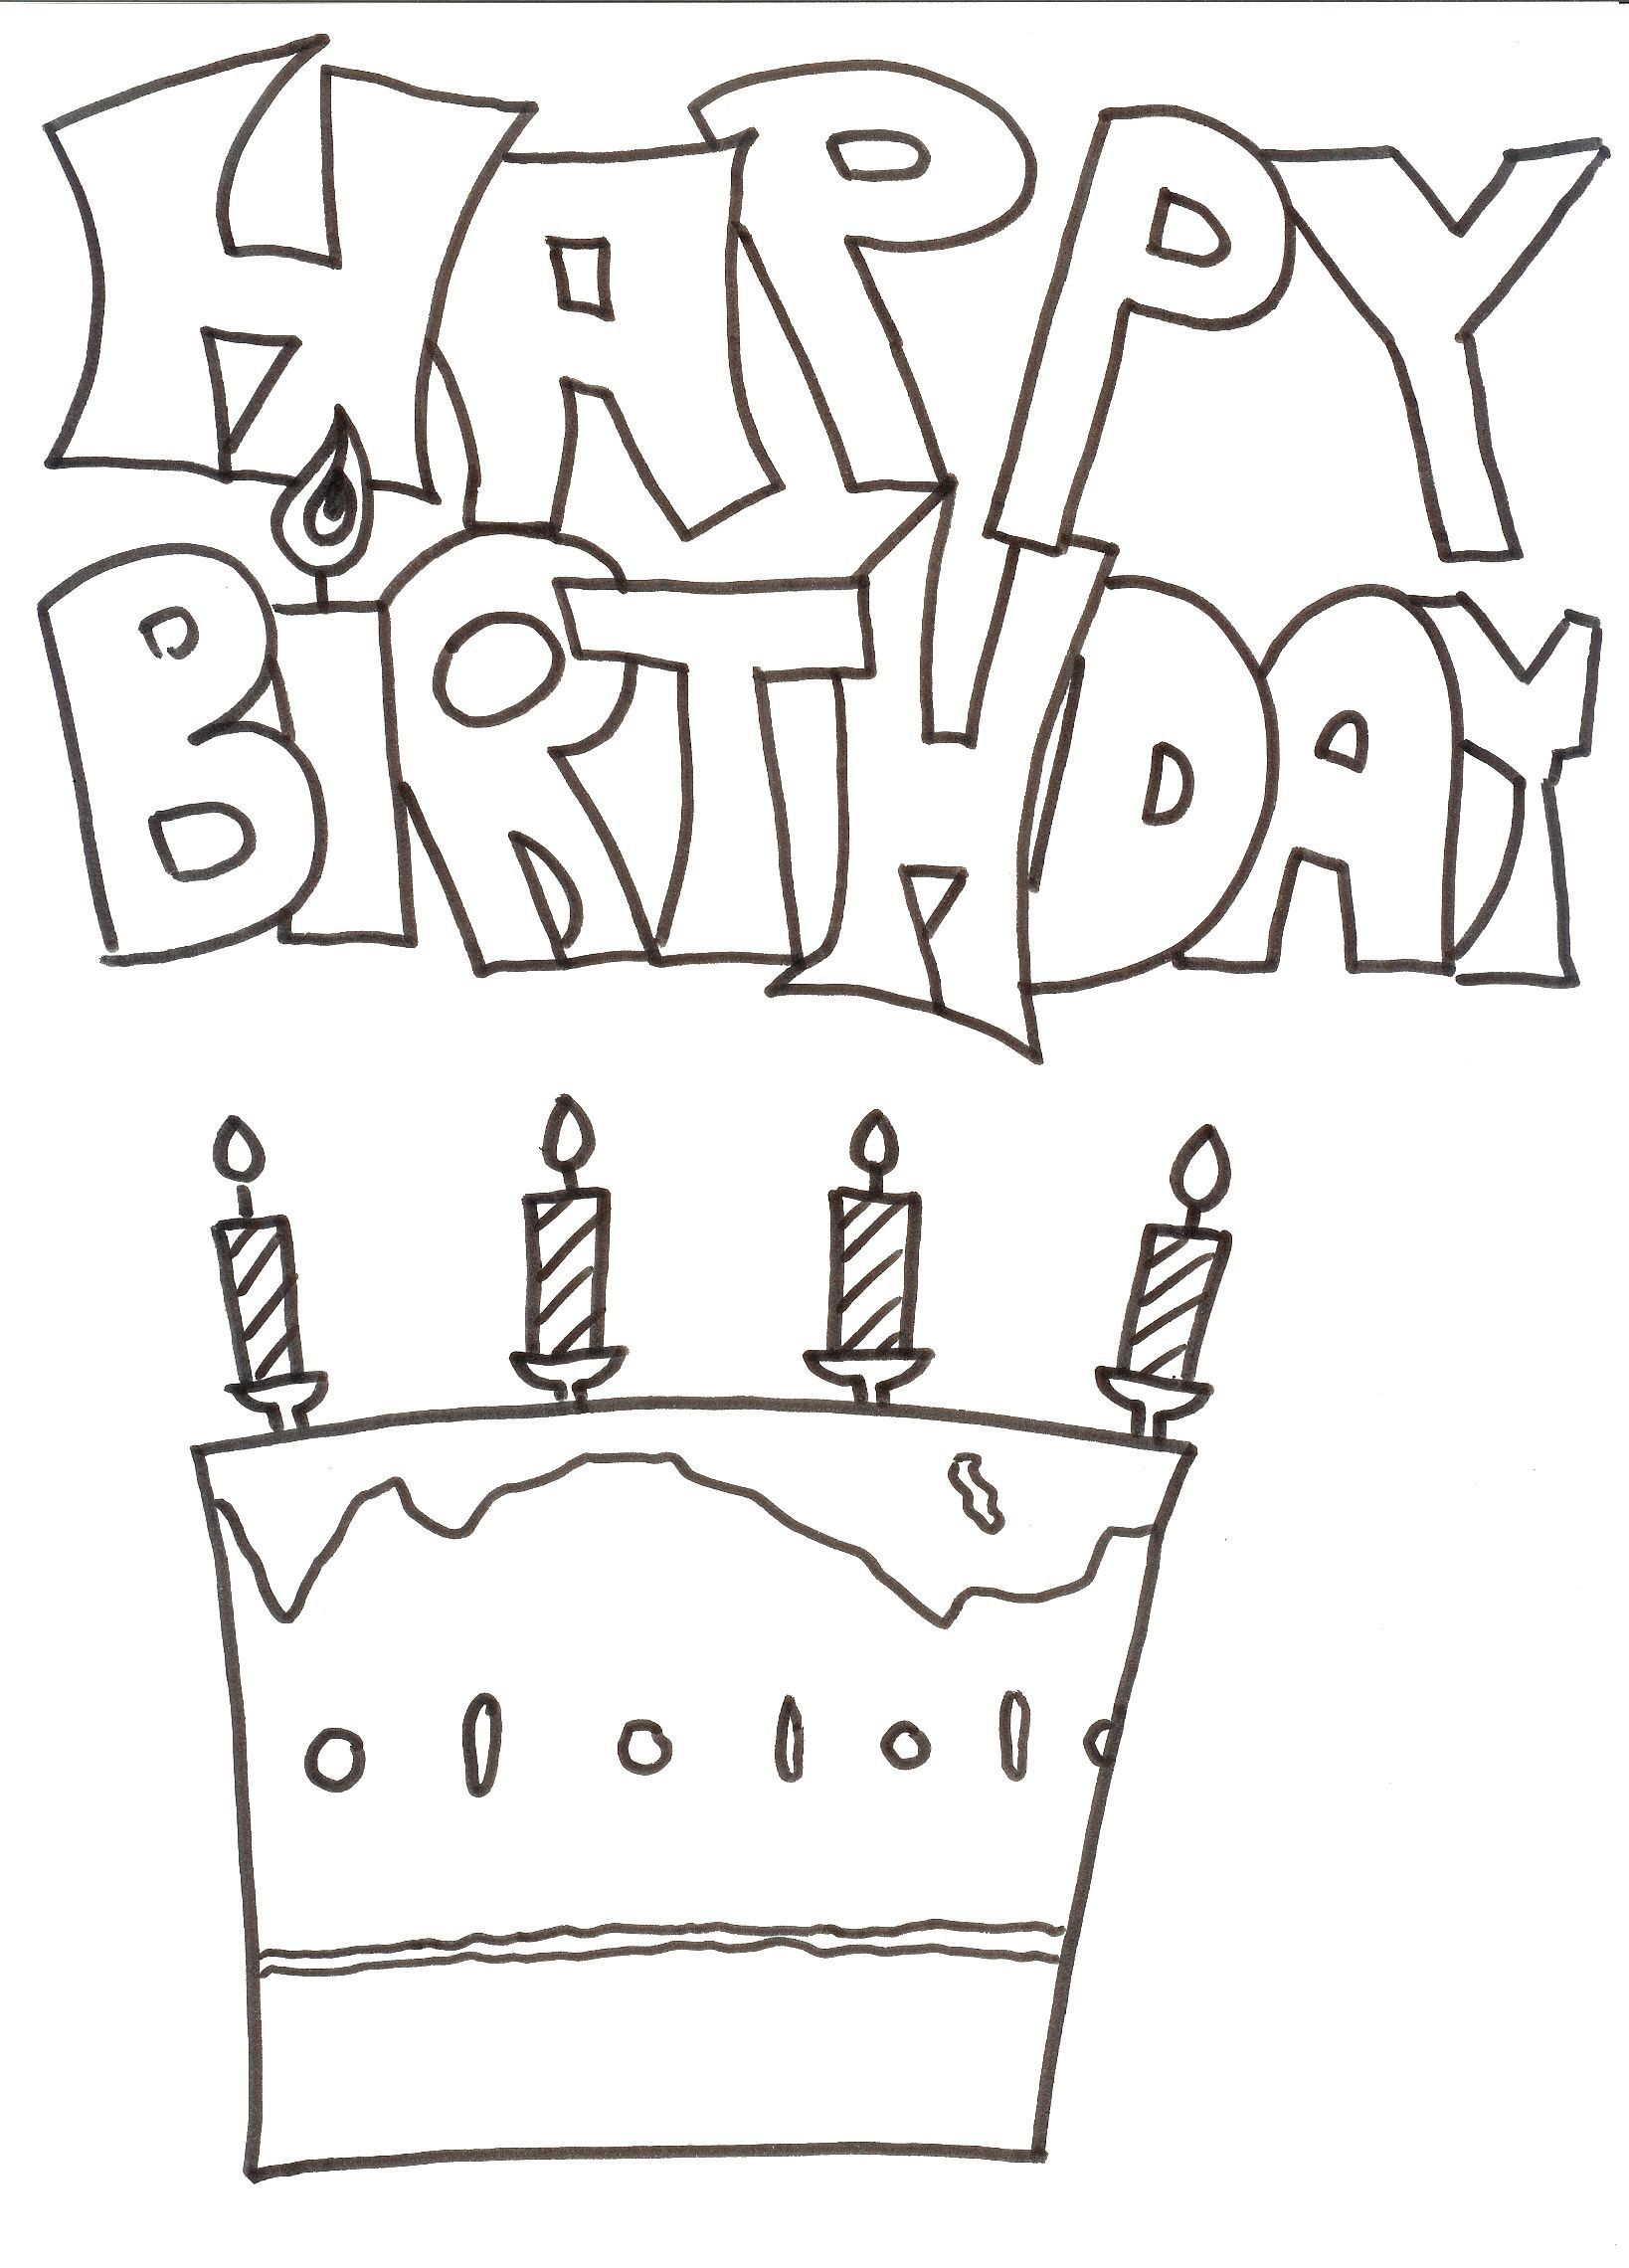 Neu Ausmalbilder Happy Birthday Malvorlagen Malvorlagenfurkinder Malvorlagenfurerwachse Happy Birthday Coloring Pages Birthday Coloring Pages Coloring Pages